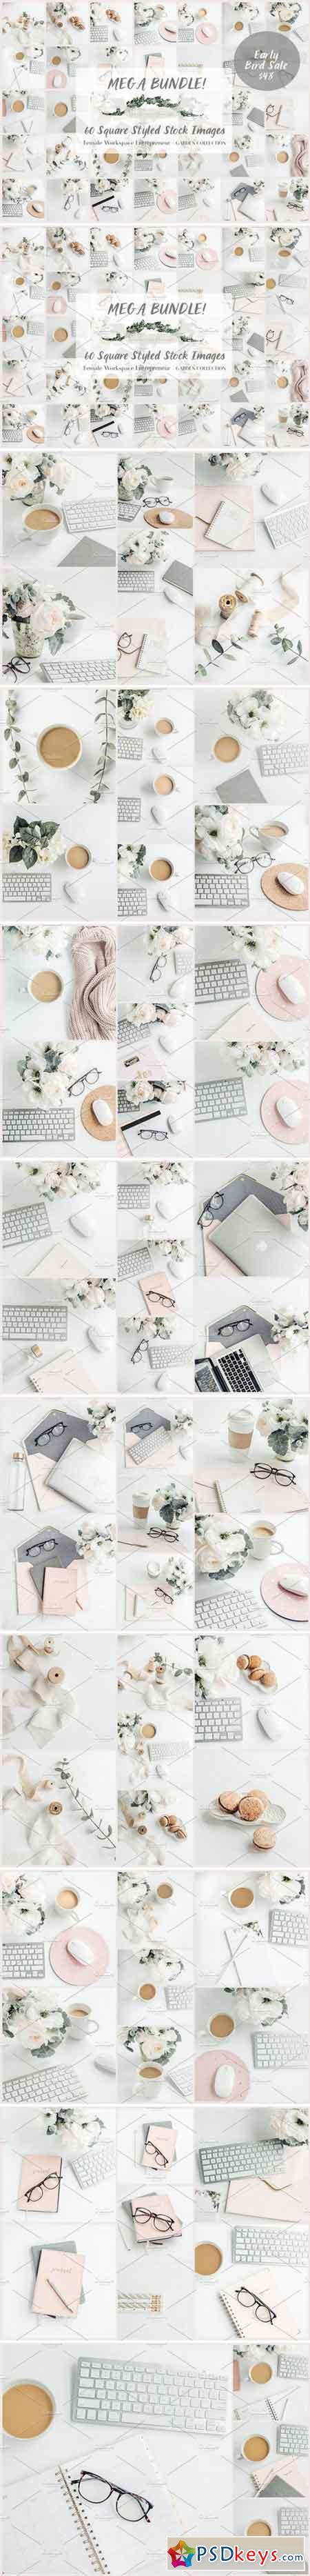 Mega Bundle- 60 Social Media images 1383535